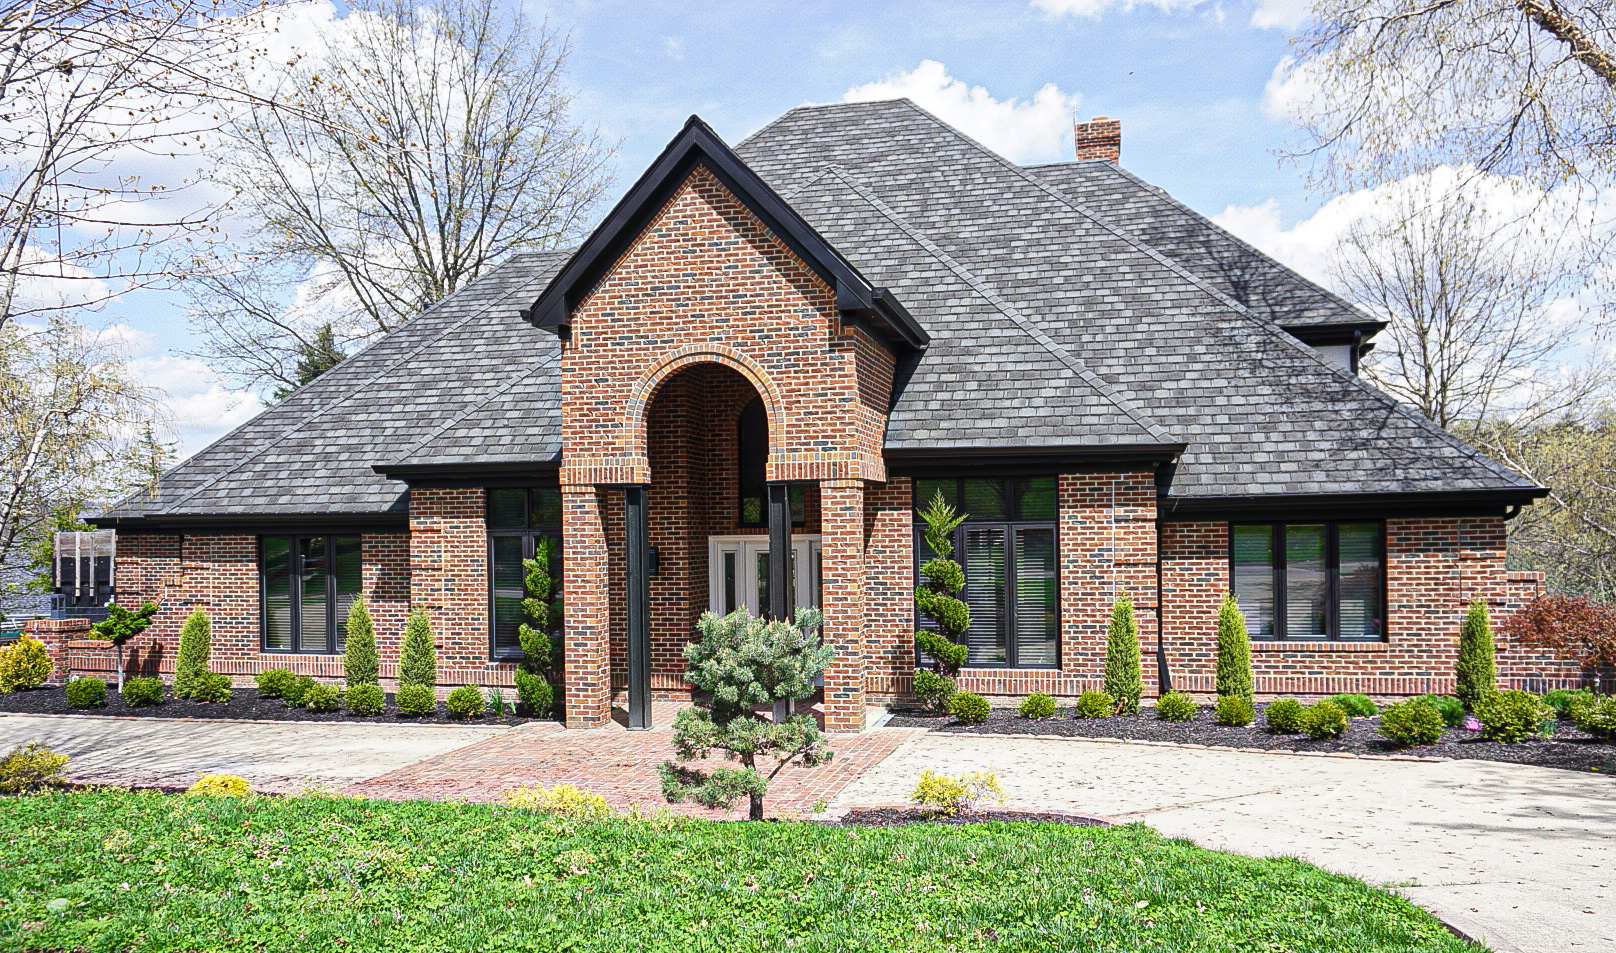 Gibsonia Residential Roofing Project